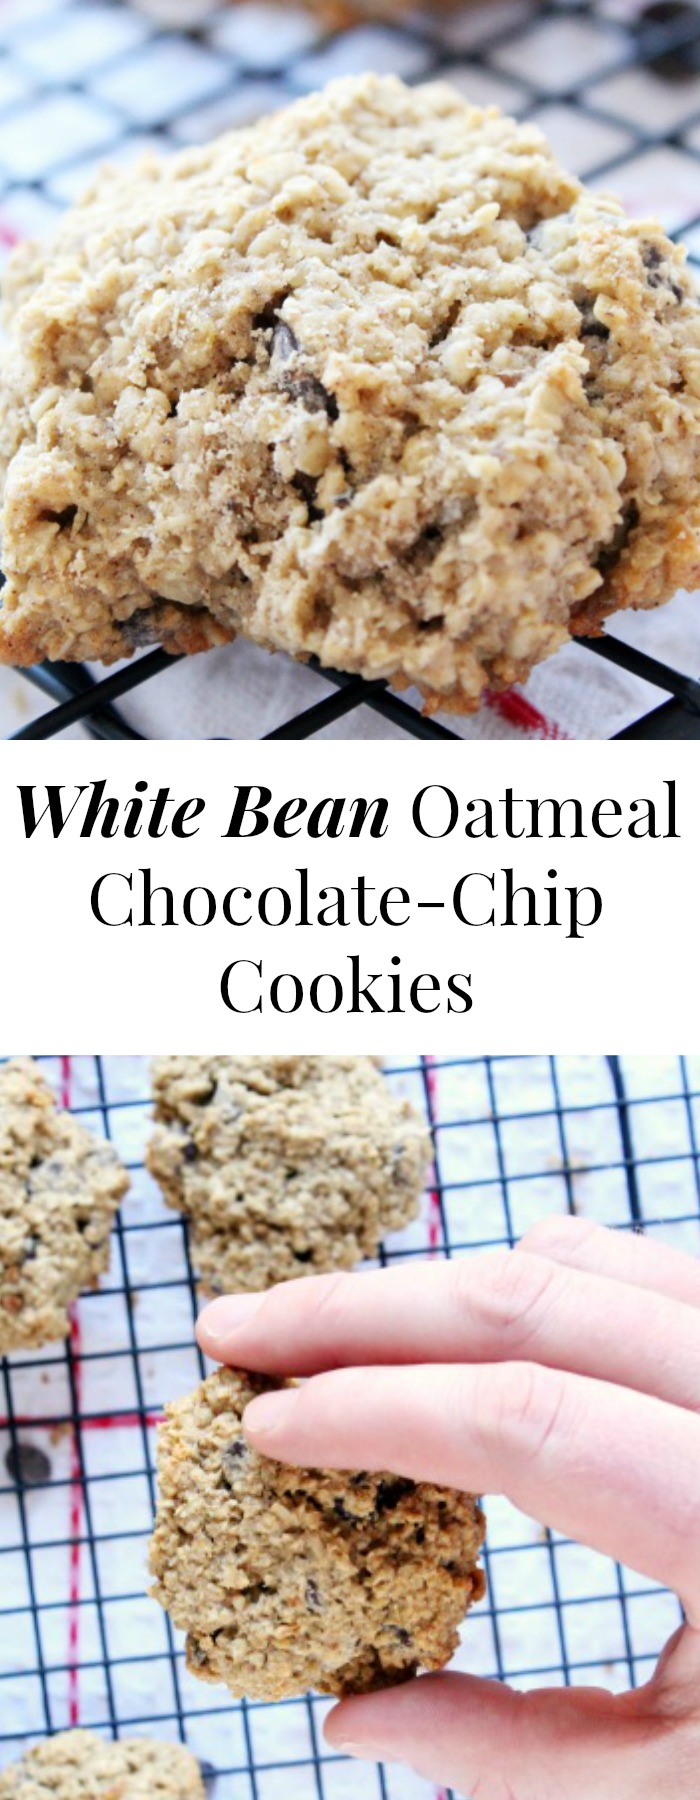 UntitledOatmeal Chocolate-Chip (and Bean!) Cookies Gluten-Free Healthy